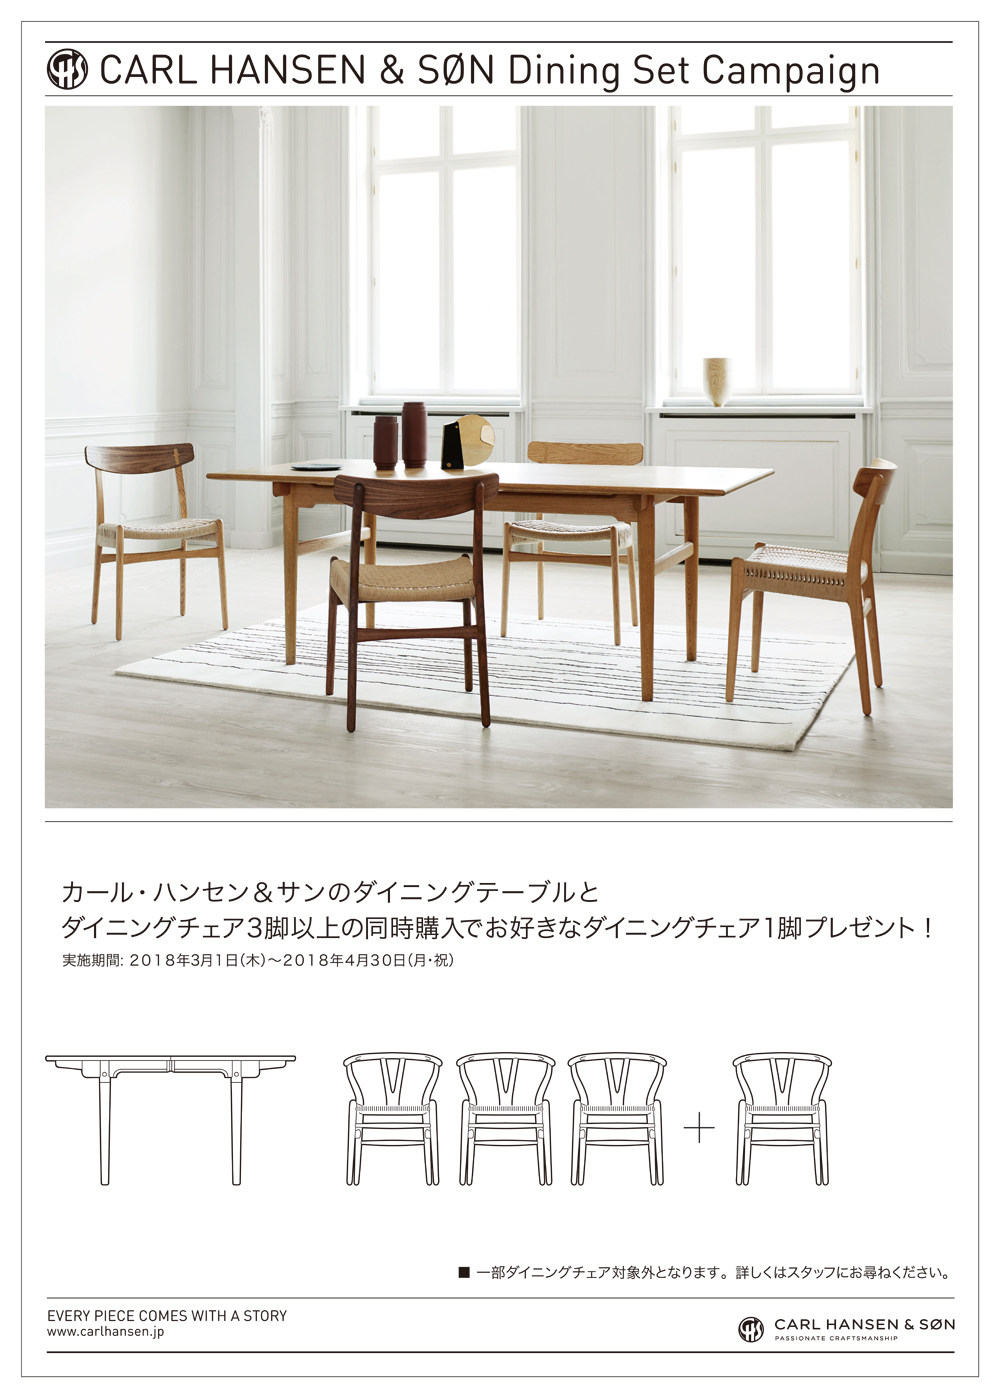 01_A1poster_2018 Dining Set Campaign